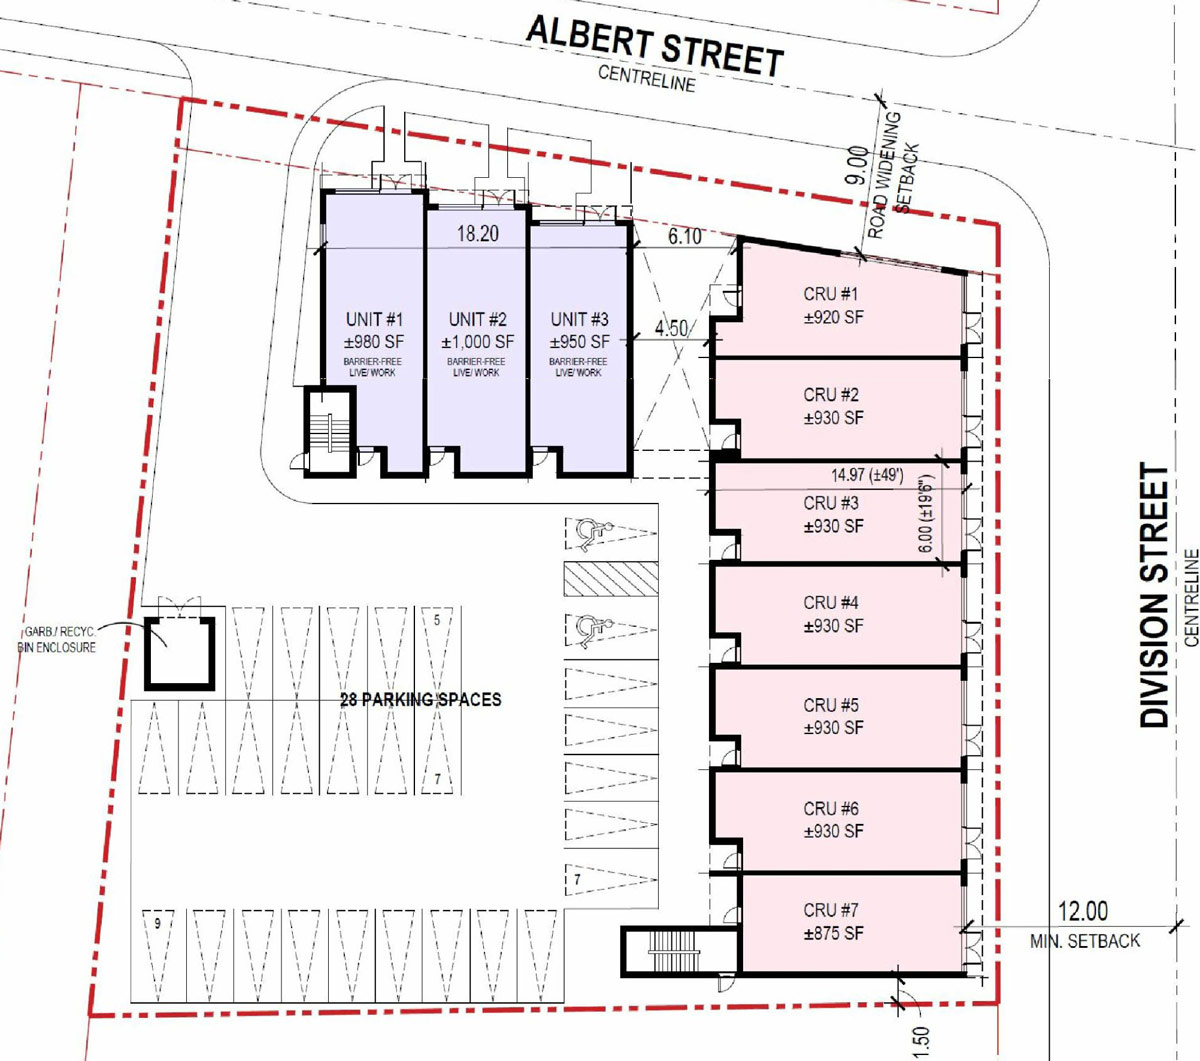 Beachwalk Flats site plan